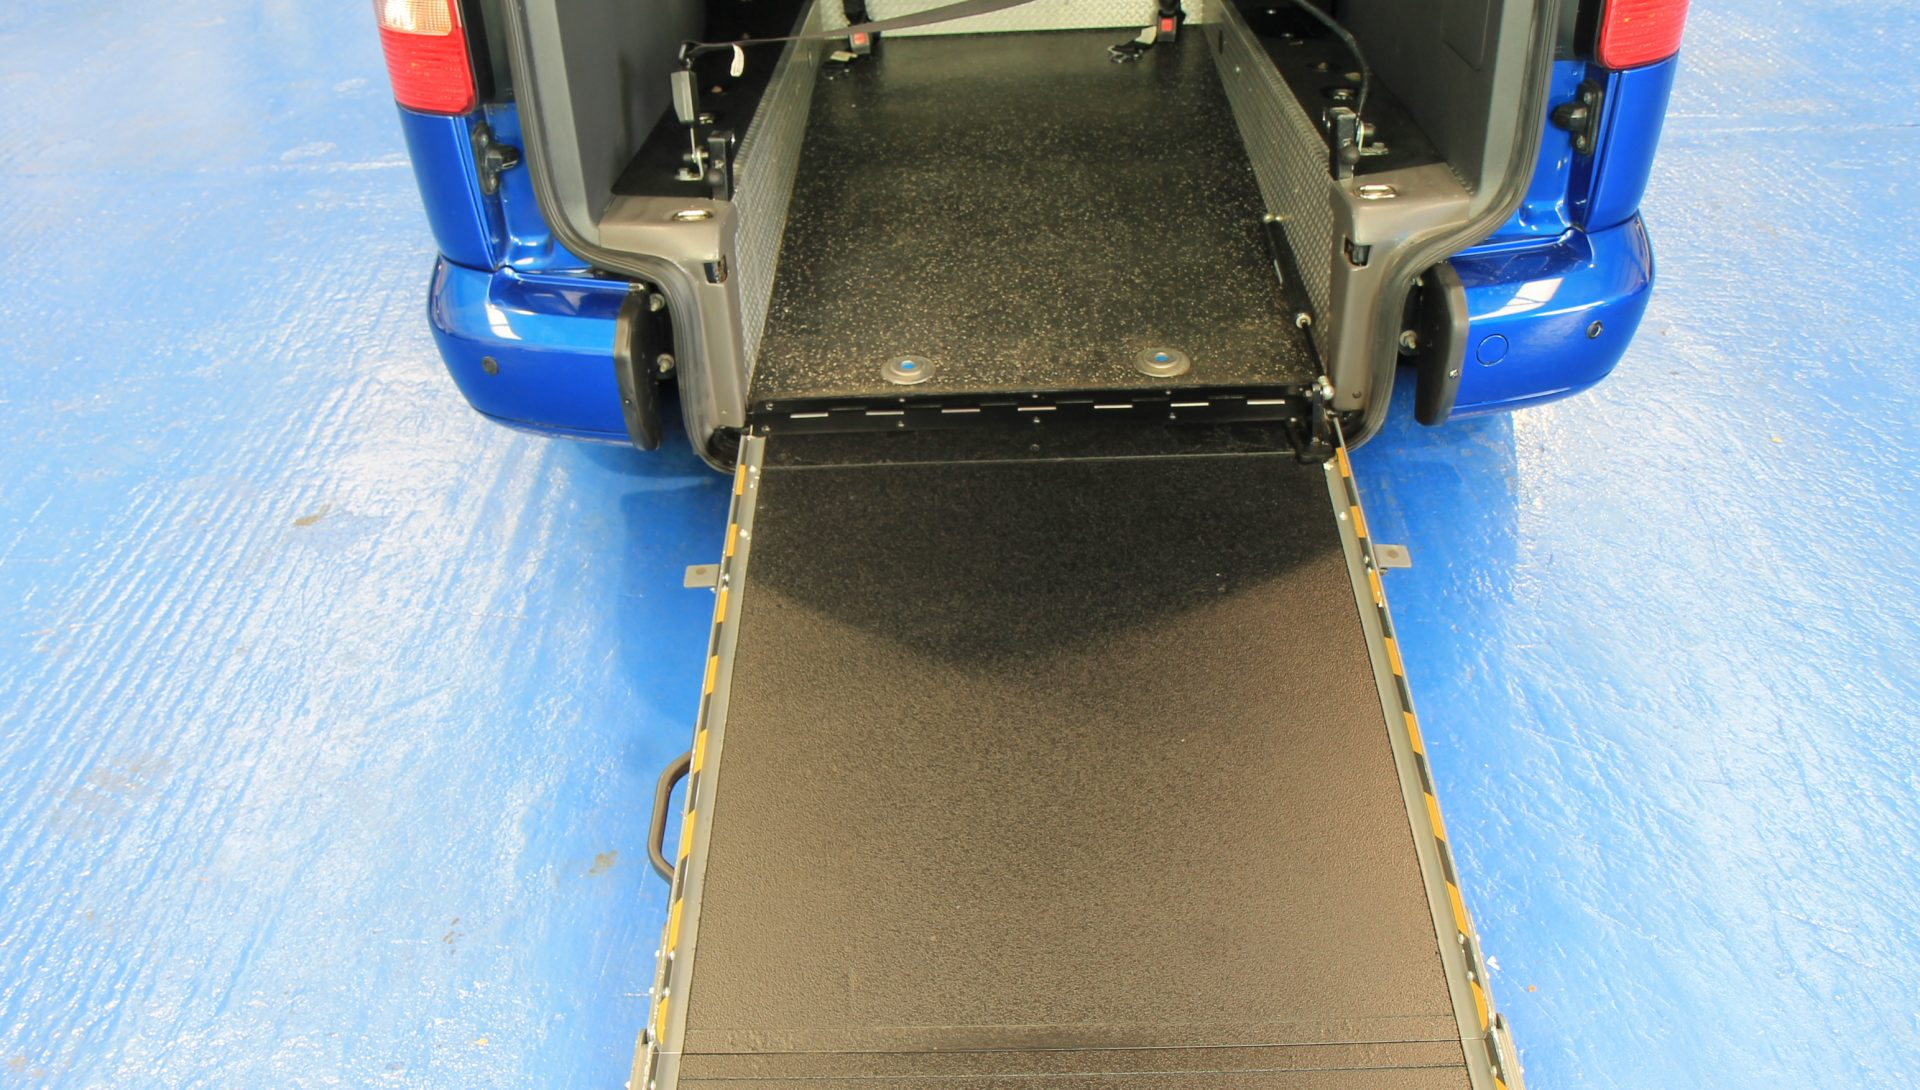 Wheelchair Accessible Vehicles: Caddy Wheelchair Accessible Vehicle Exz31